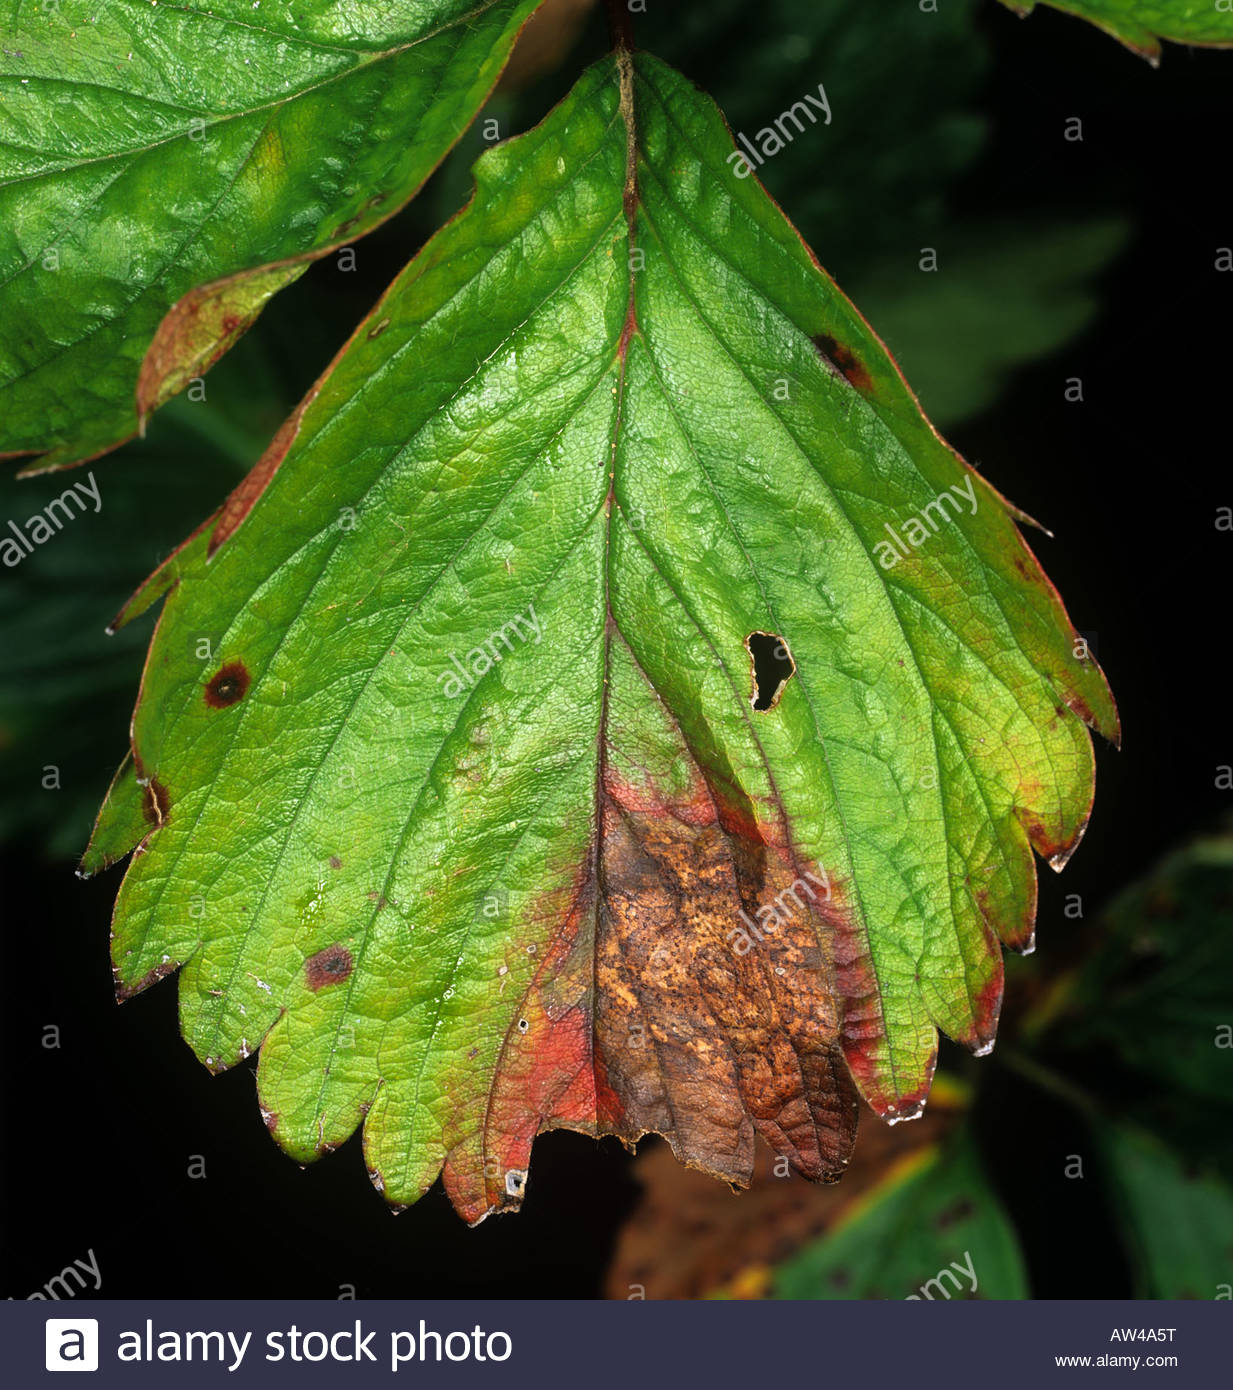 Strawberry leaf blotch Gnomonia fragariae necrosis to strawberry leaf - Stock Image